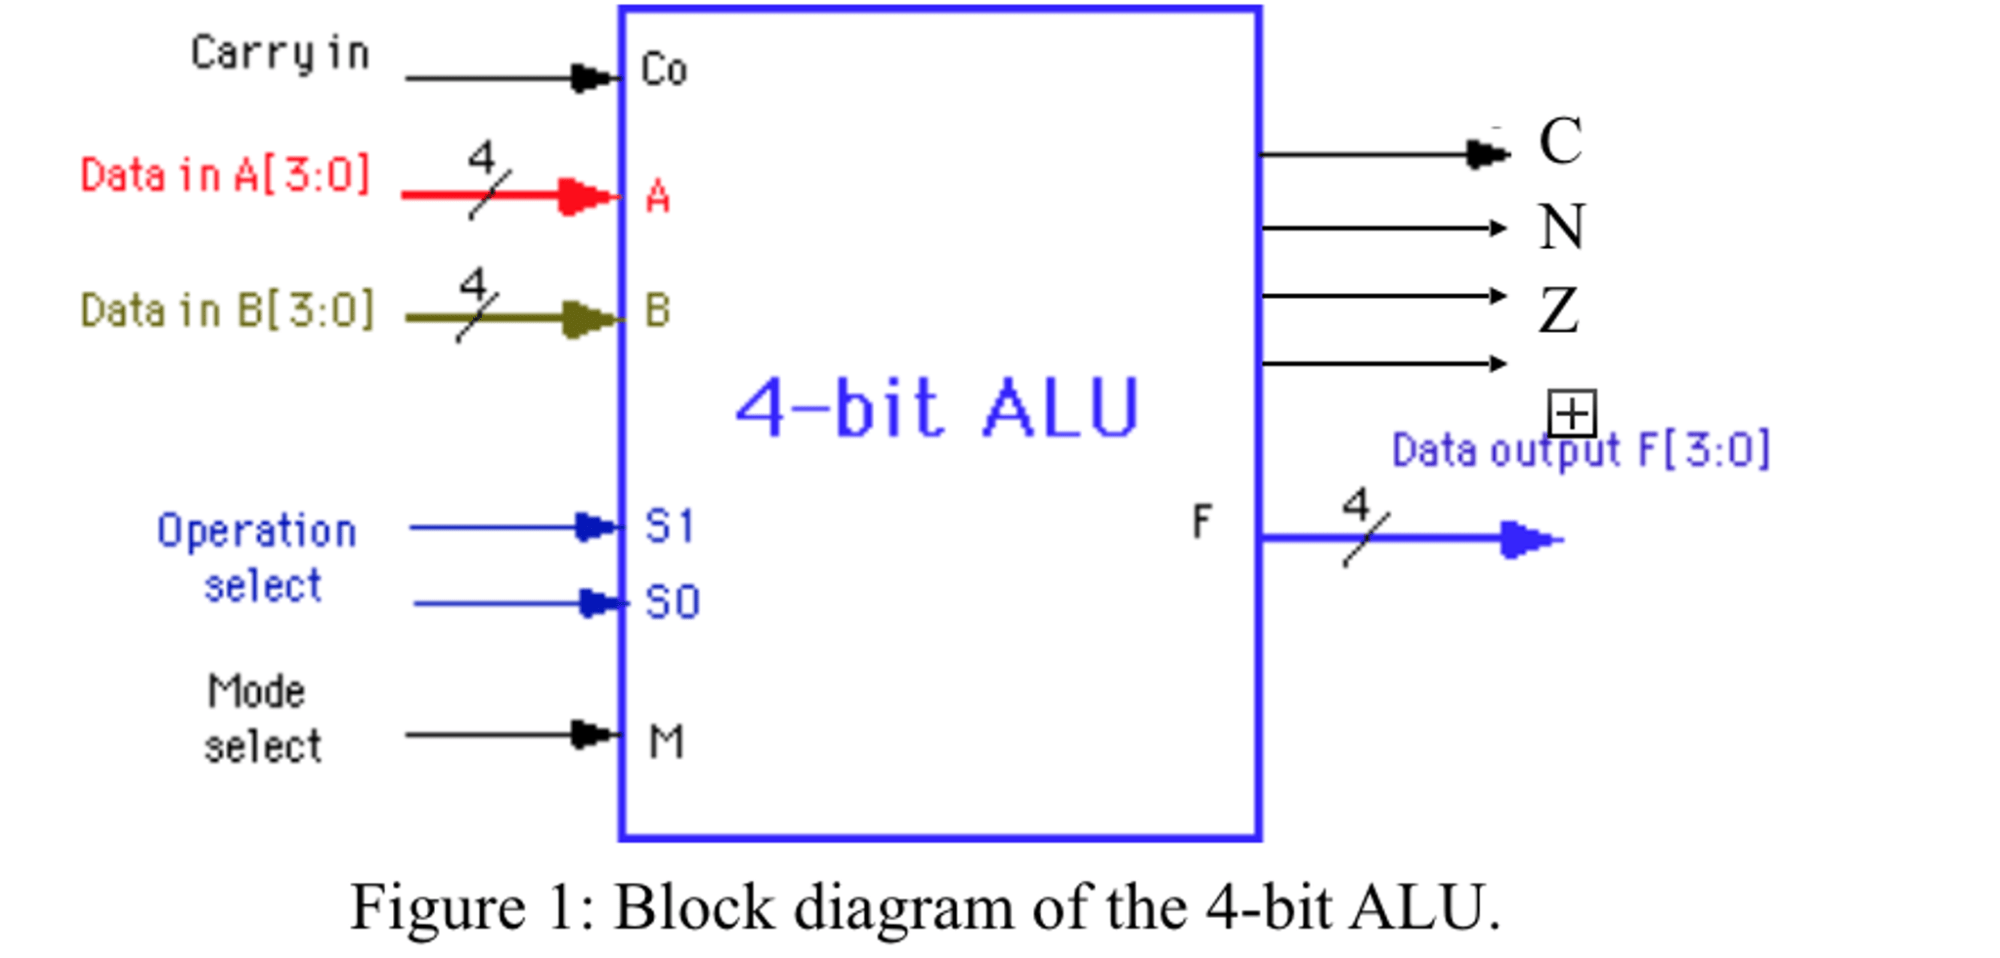 hight resolution of 4 function alu circuit diagram wiring diagram hub 1 bit full adder 4 bit alu logic diagram